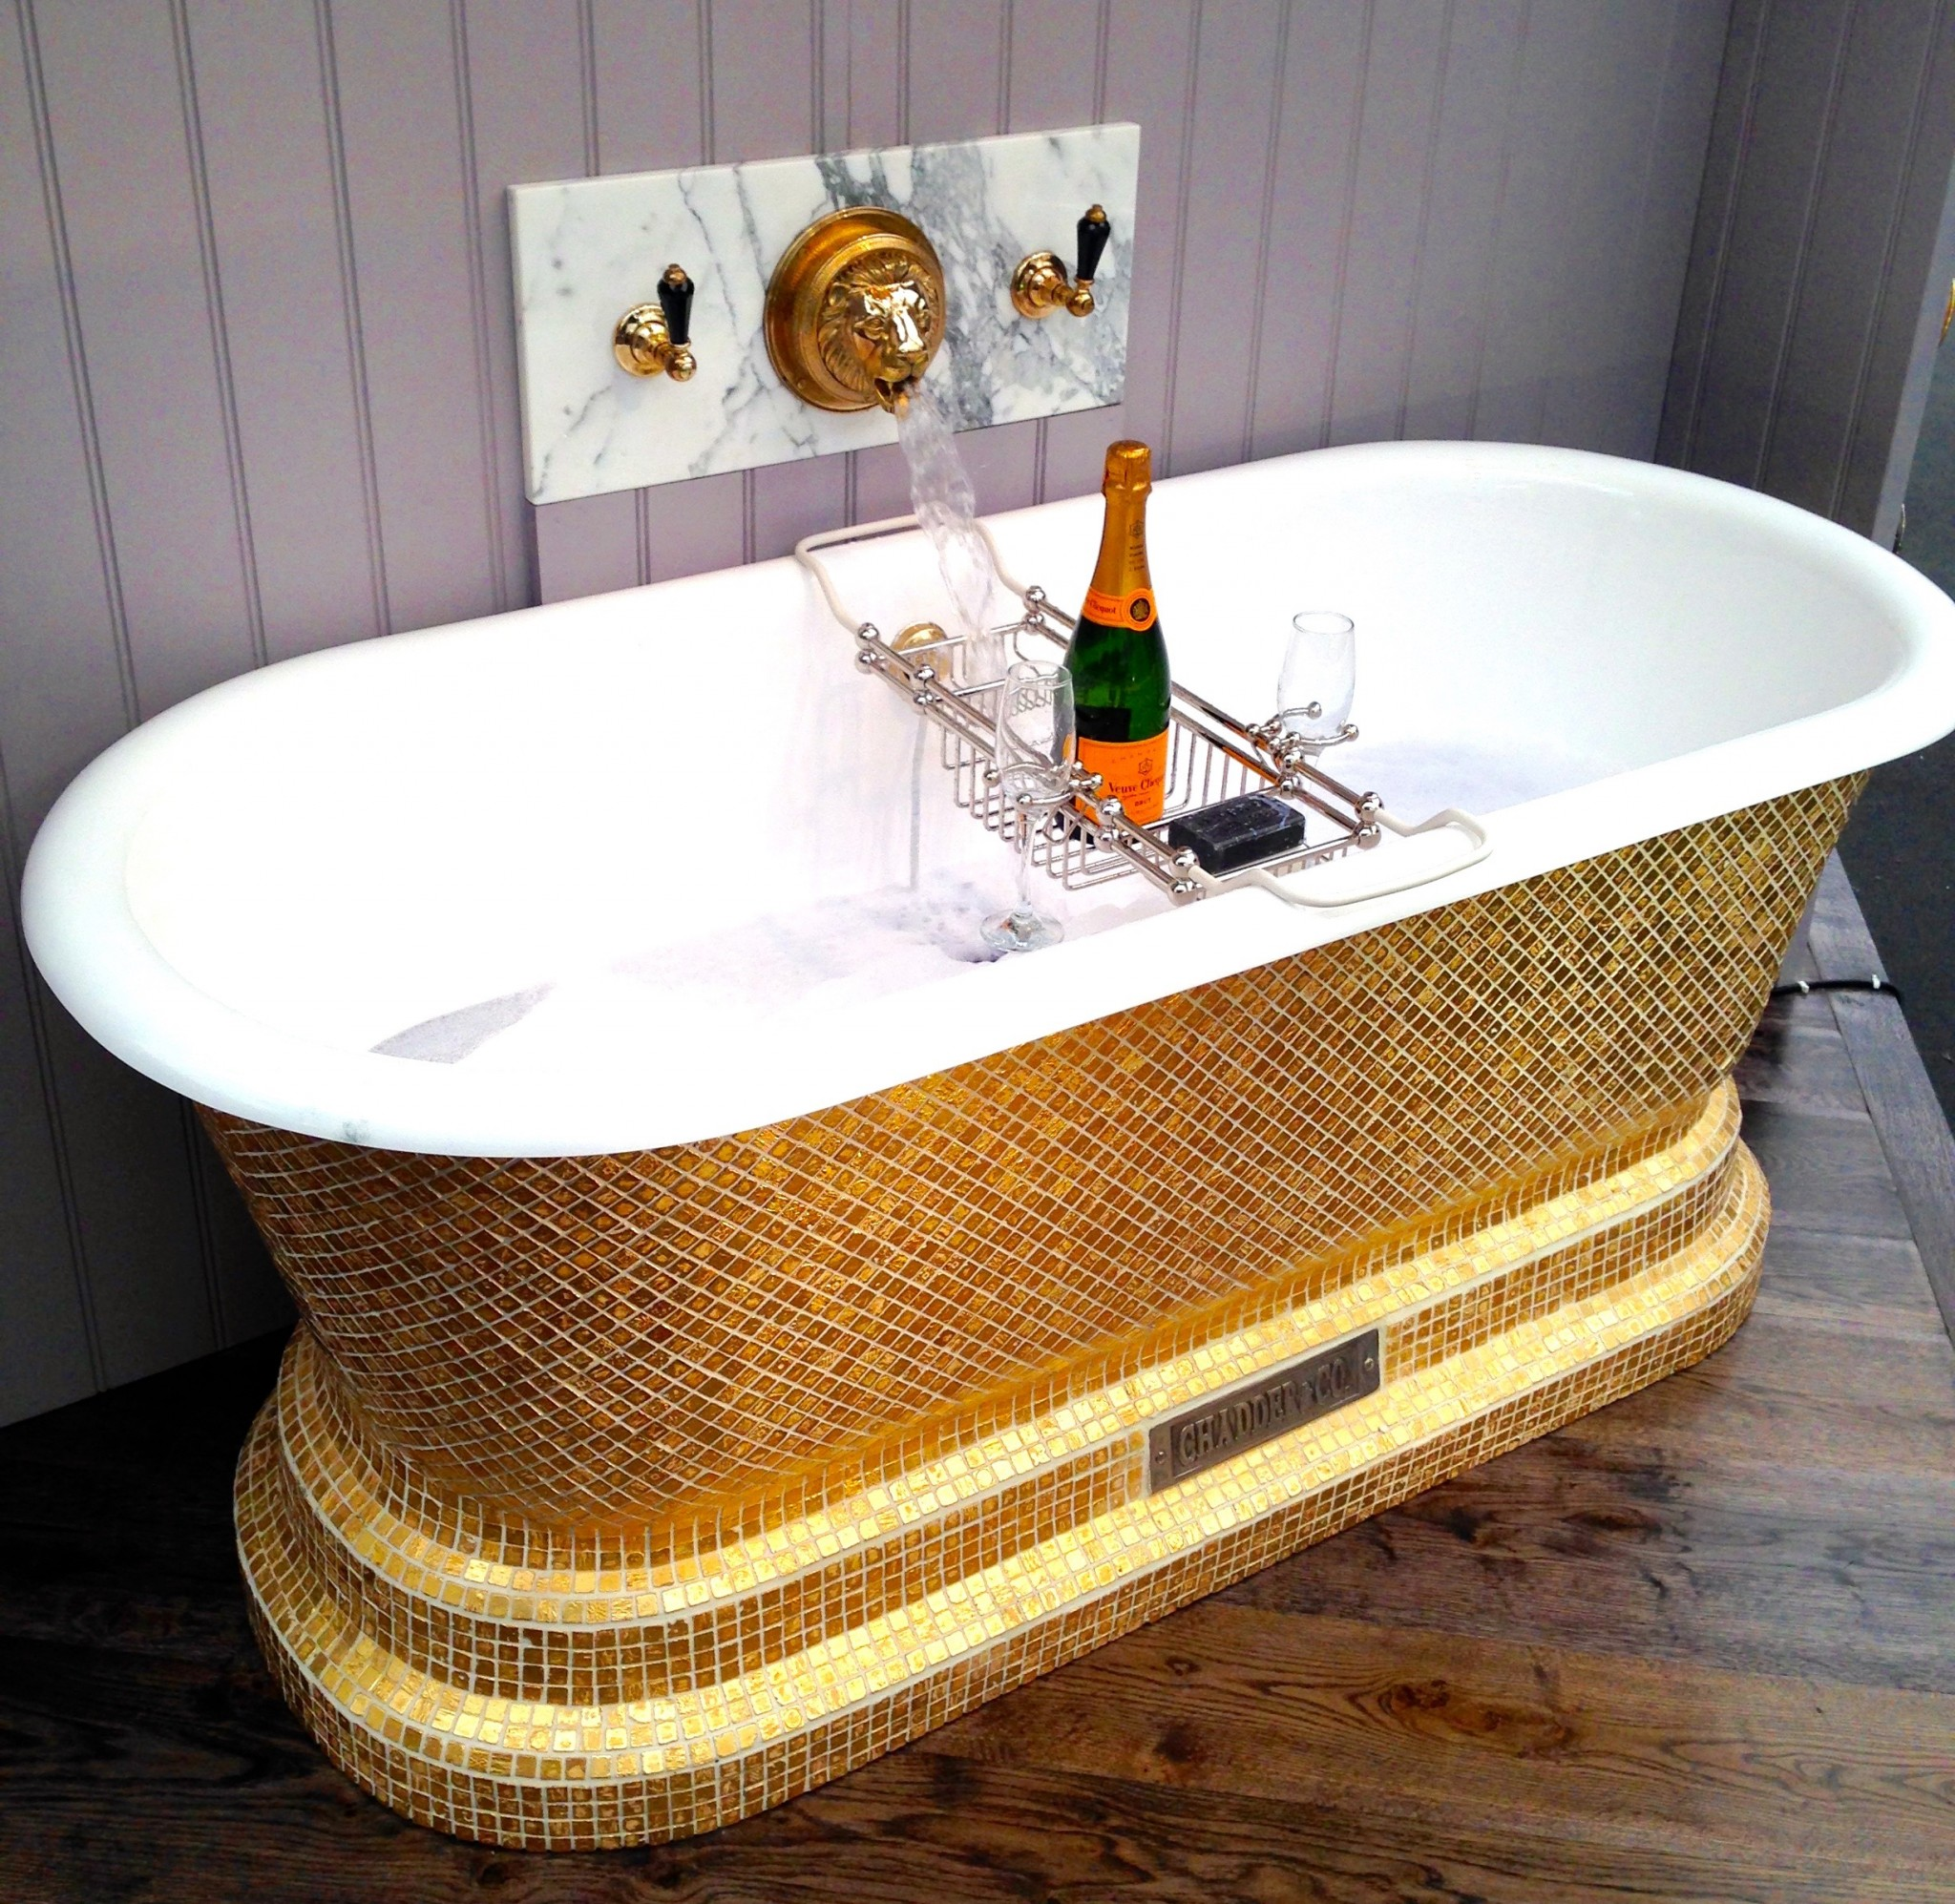 Very gold mosaic bathroom accessories home design plan for Mosaic bathroom accessories